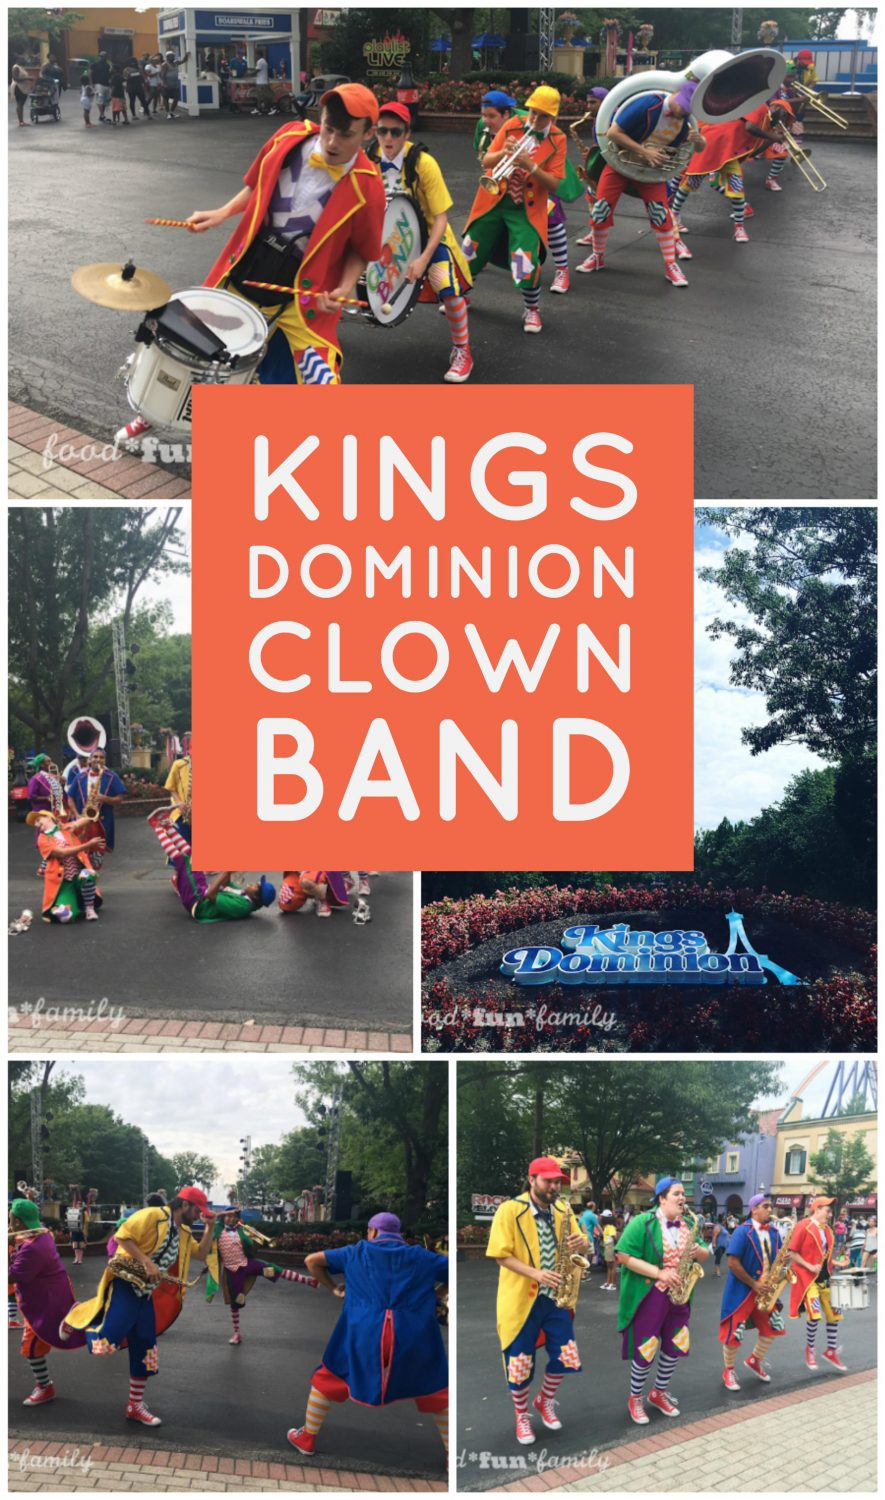 Kings Dominion KidsFest Clown Band